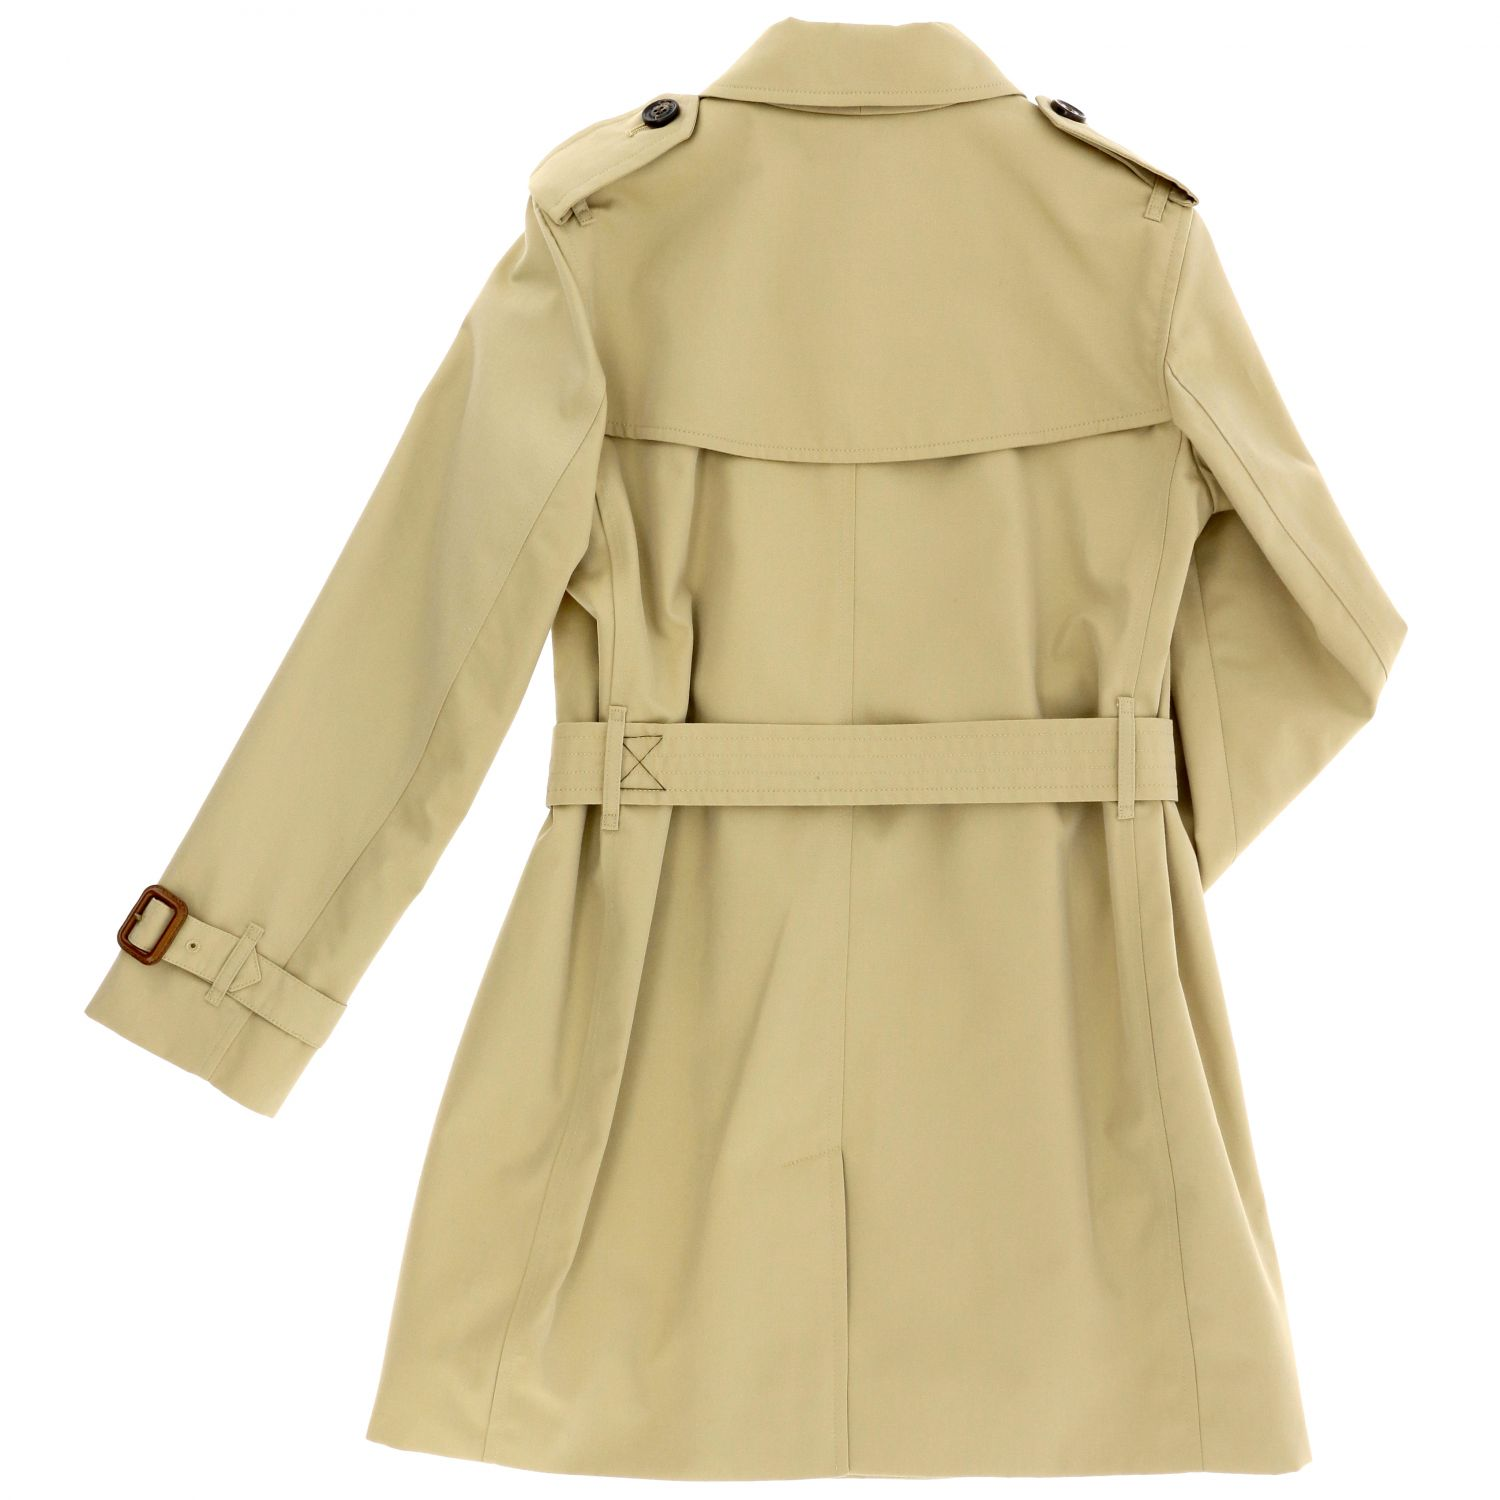 Burberry cotton gabardine trench coat beige 2